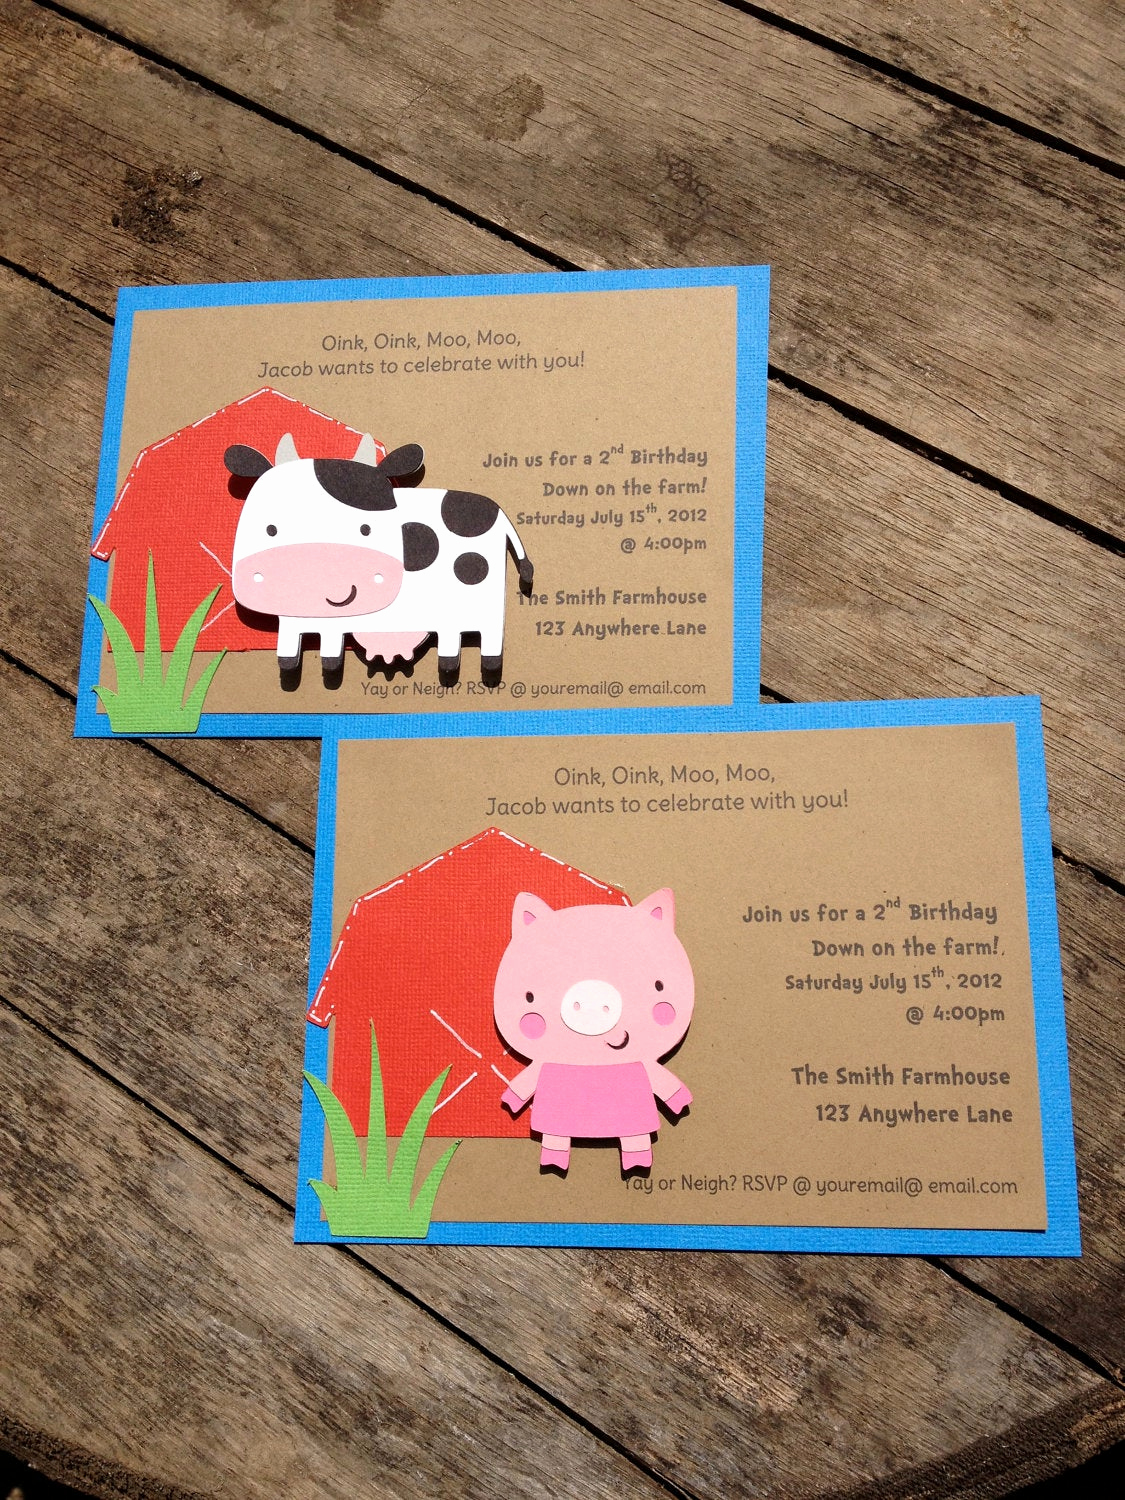 Barnyard Birthday Invitation Templates Unique Barnyard Farm Party Invitations Cow Pig Barn Birthday